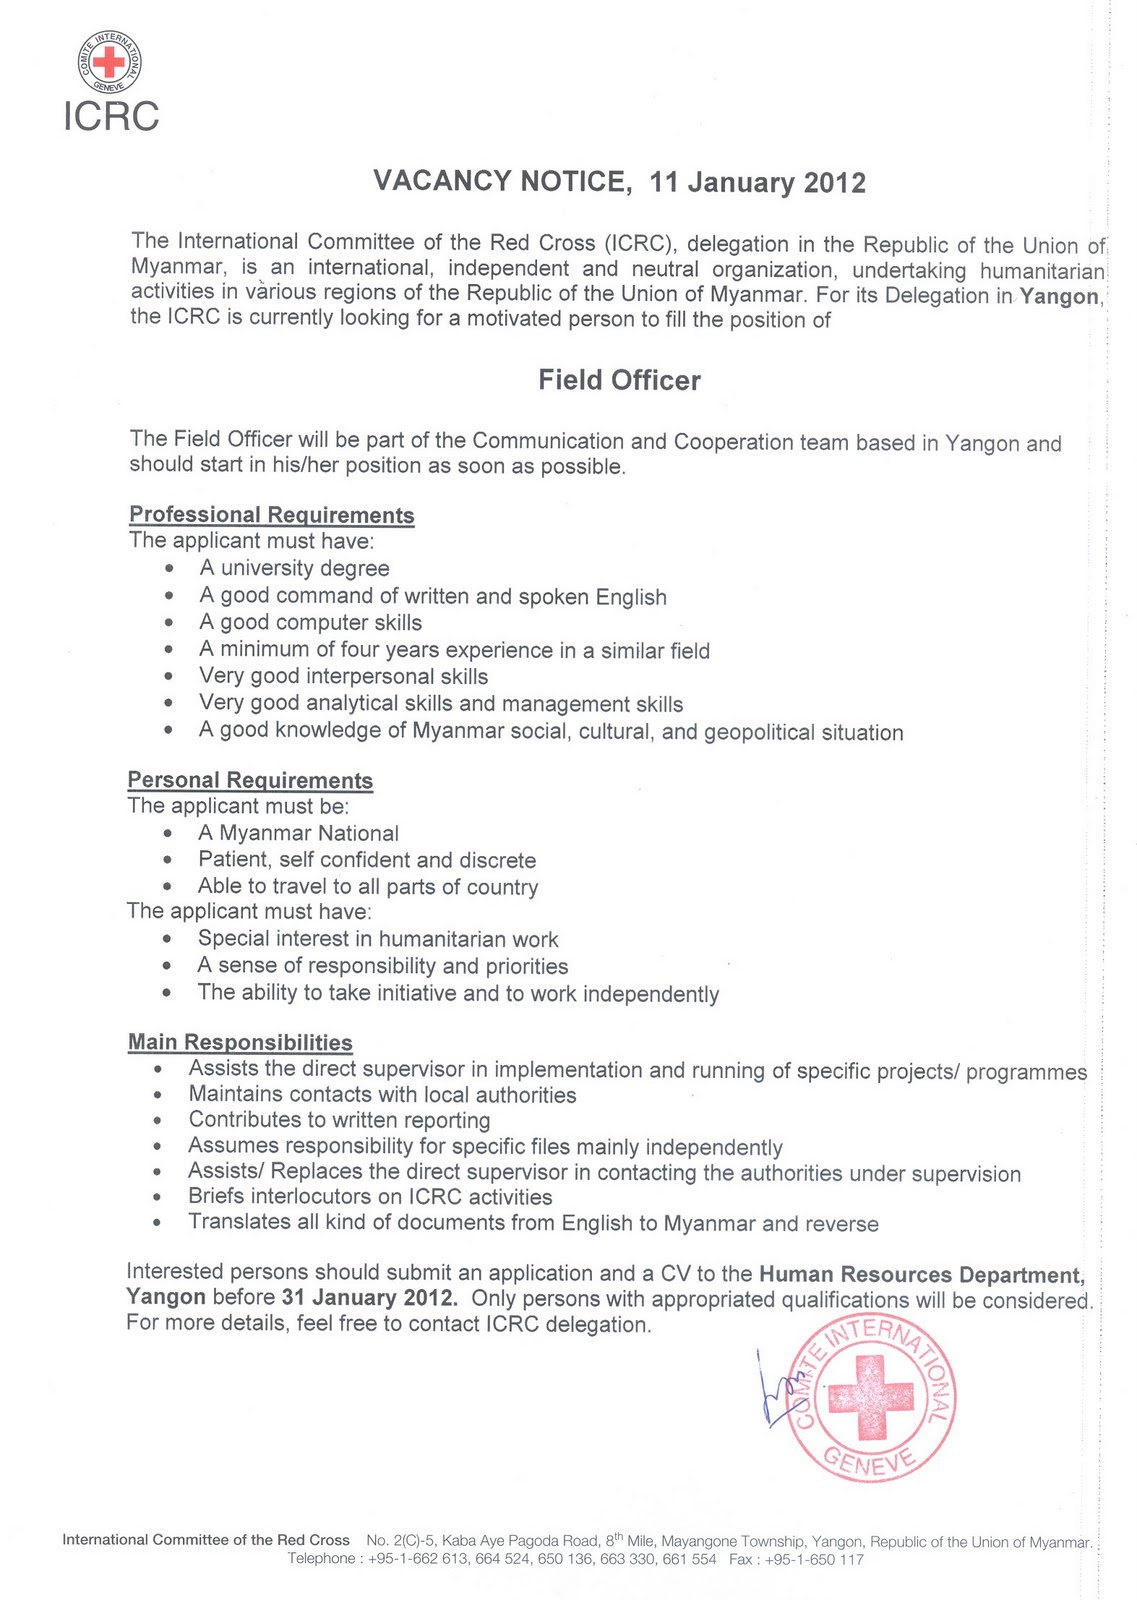 cover letter example monash monash job application j crew how to example cover letter for nursing administrative assistant sample cover